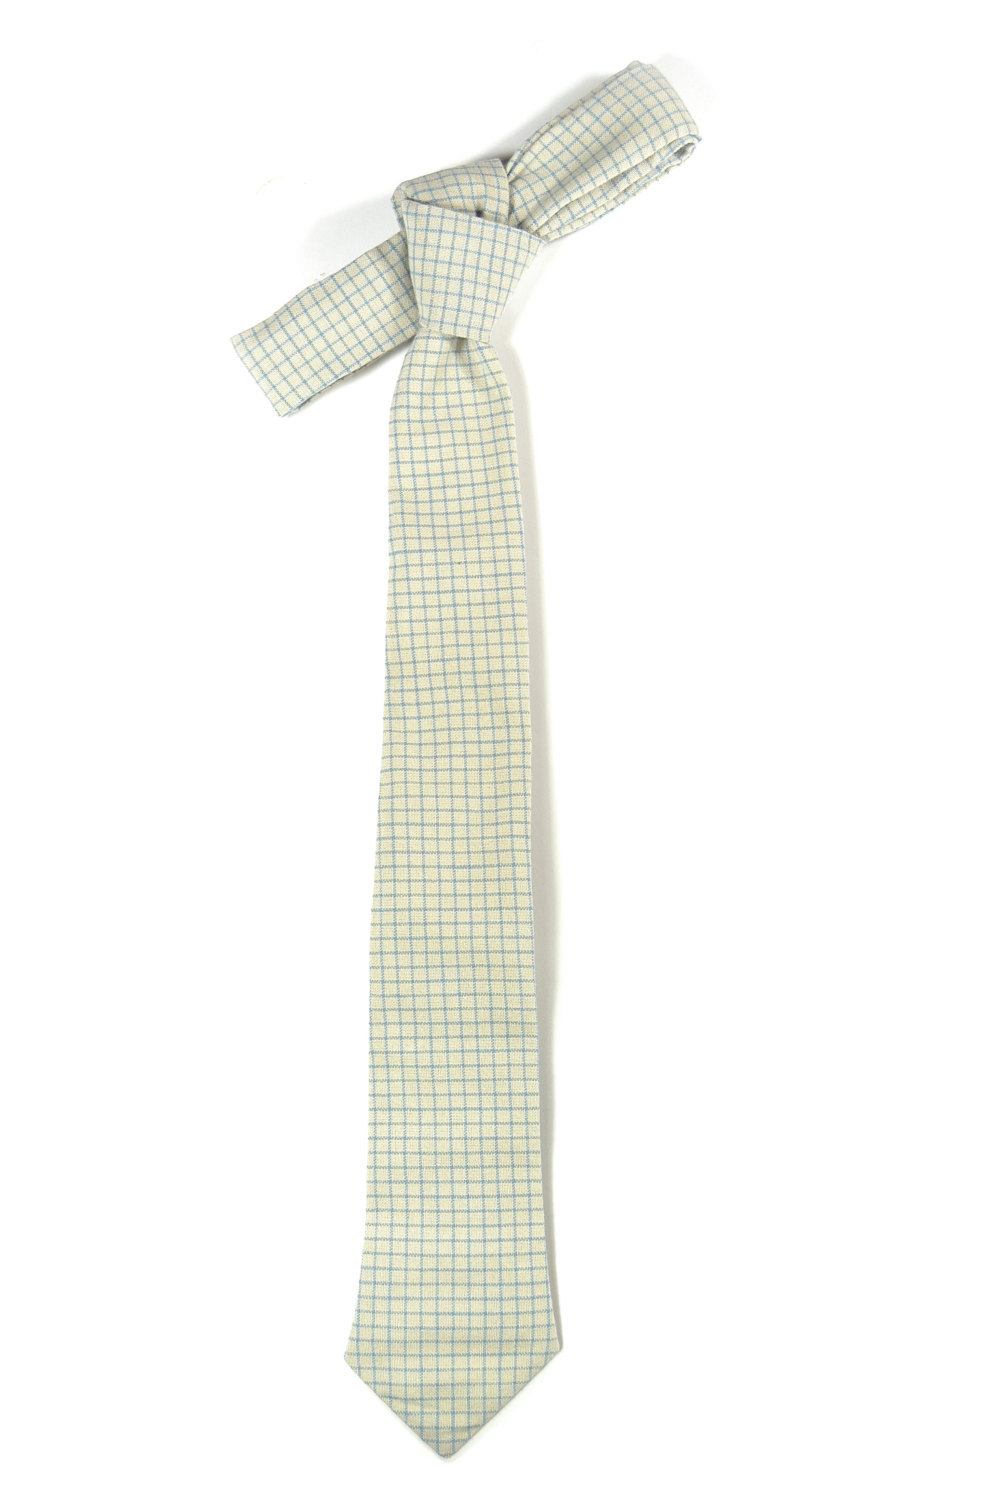 Cream blue check necktie - Wedding Mens Tie Skinny Necktie - Laid-Back necktie image 5